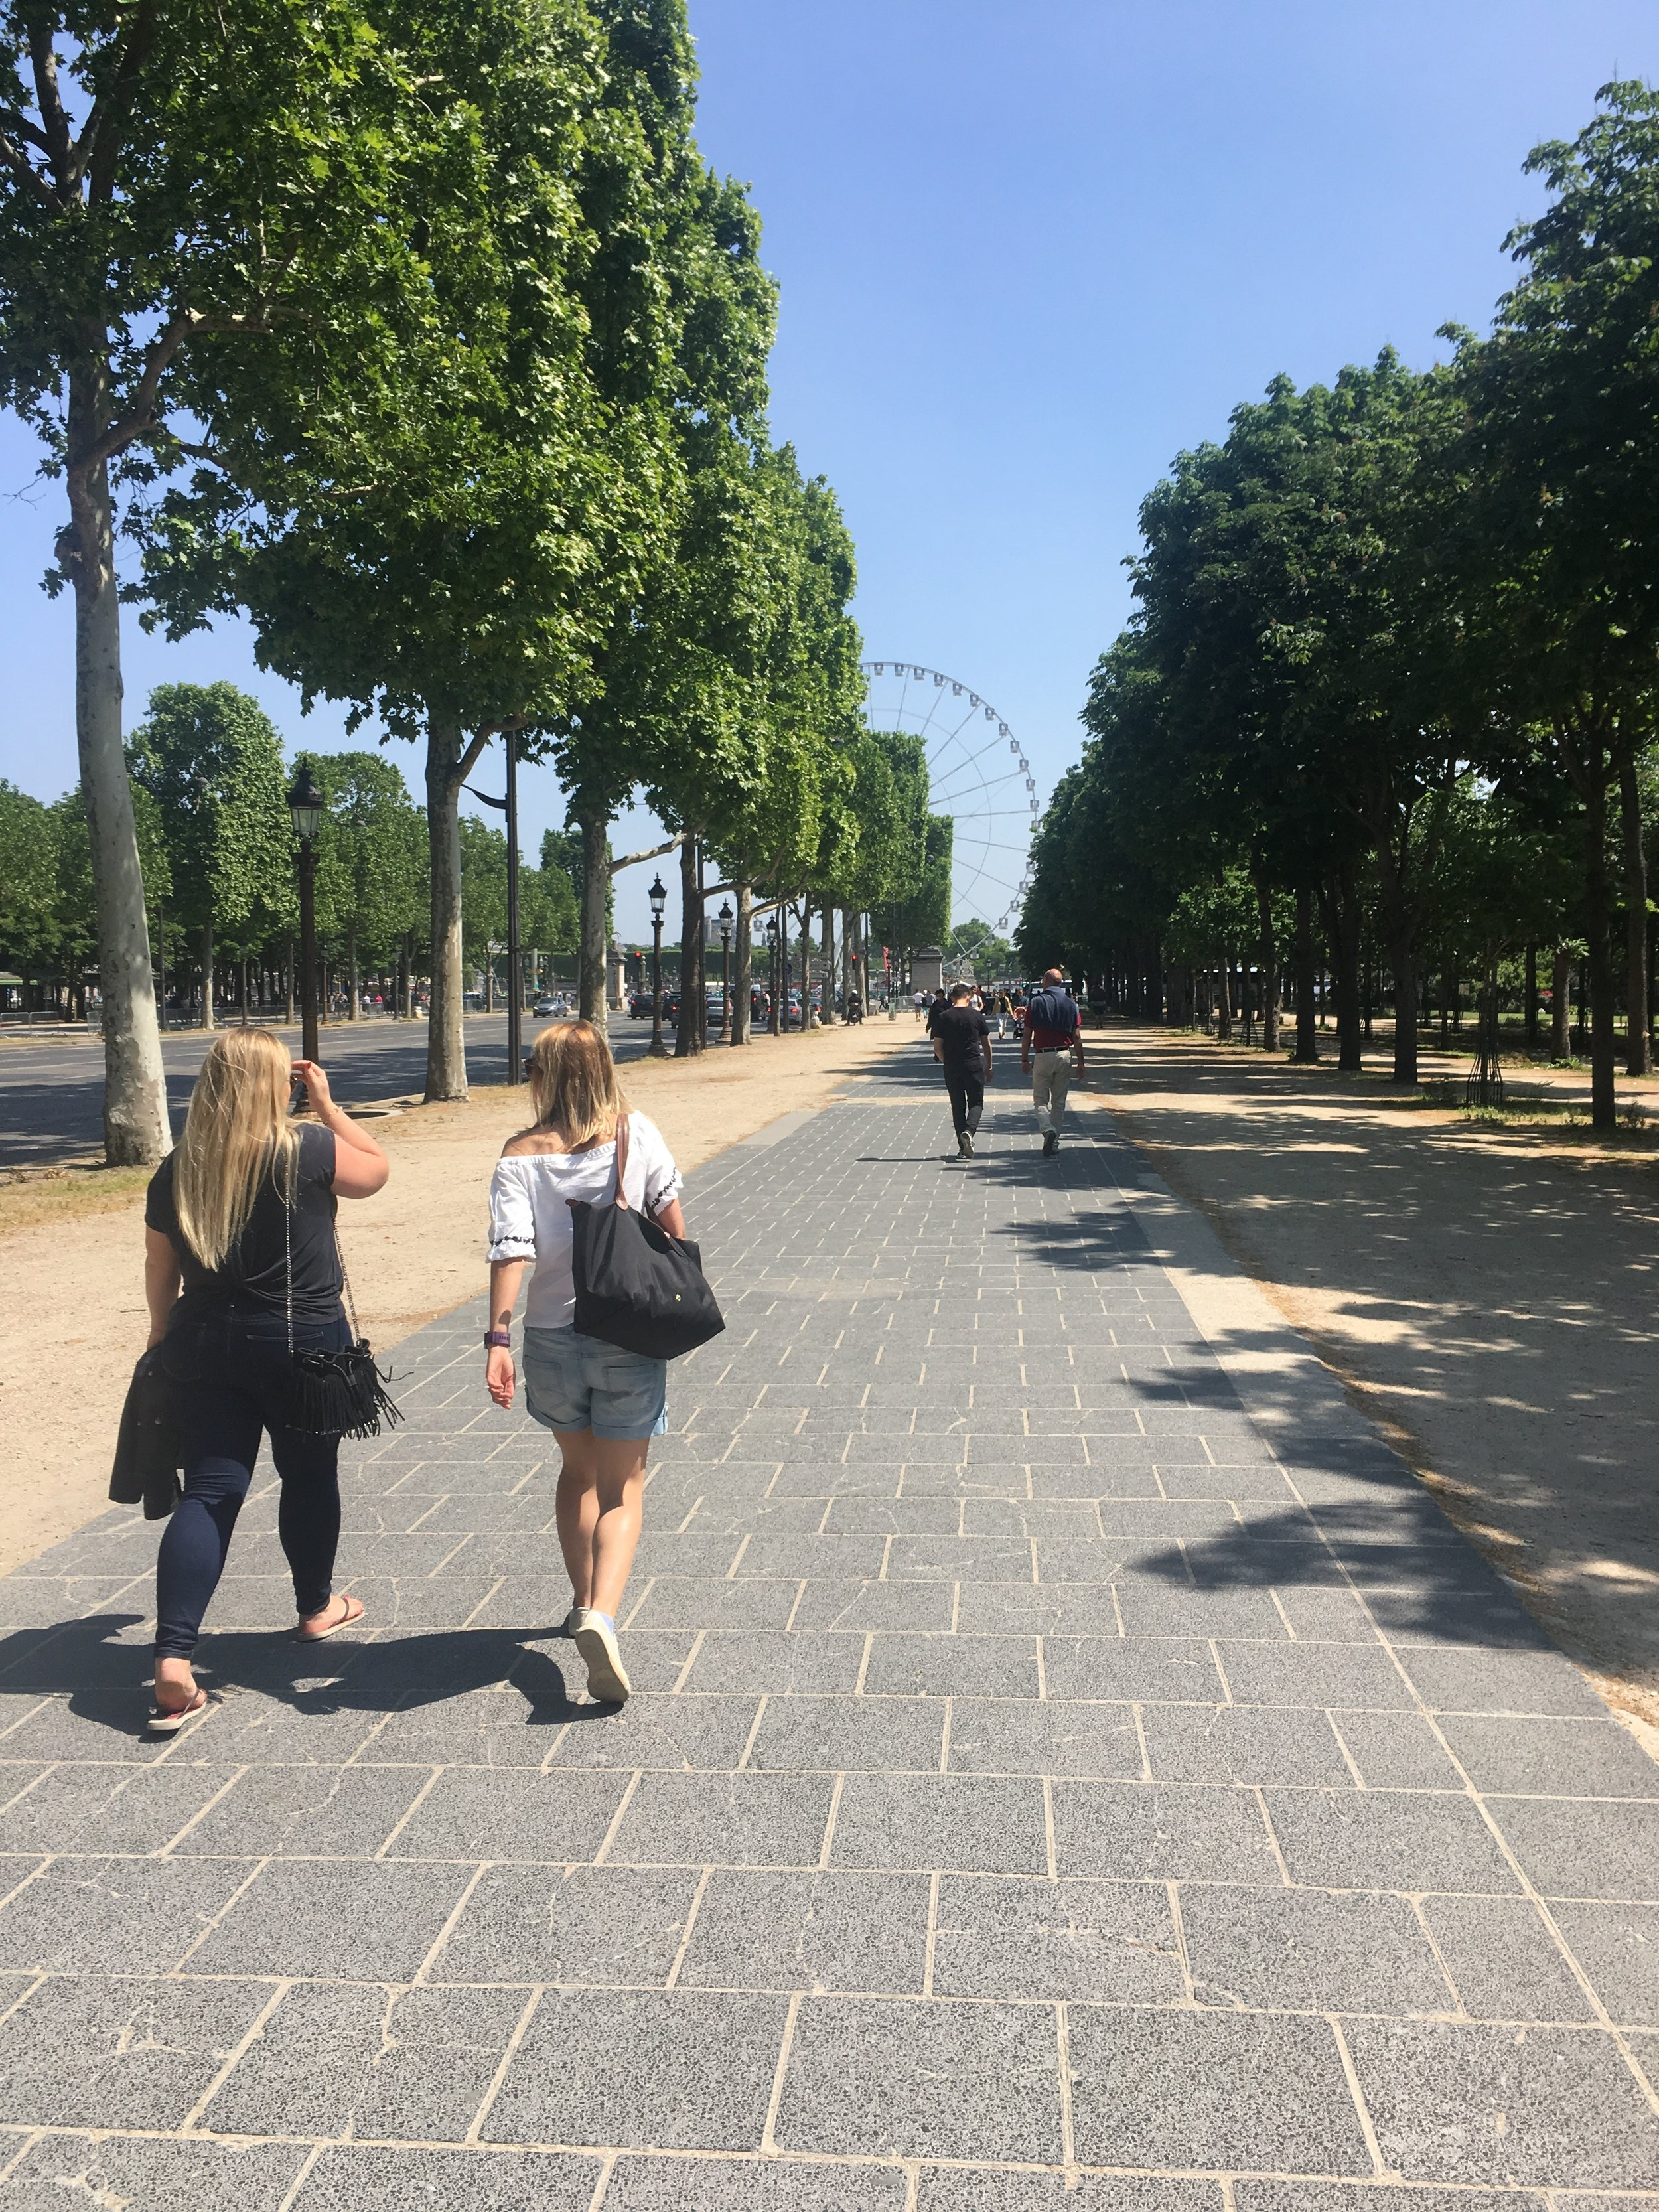 We walked so much on this trip and it was wonderful in the sun. This is park leading up the the Champs Elysée and the Ferris Wheel.